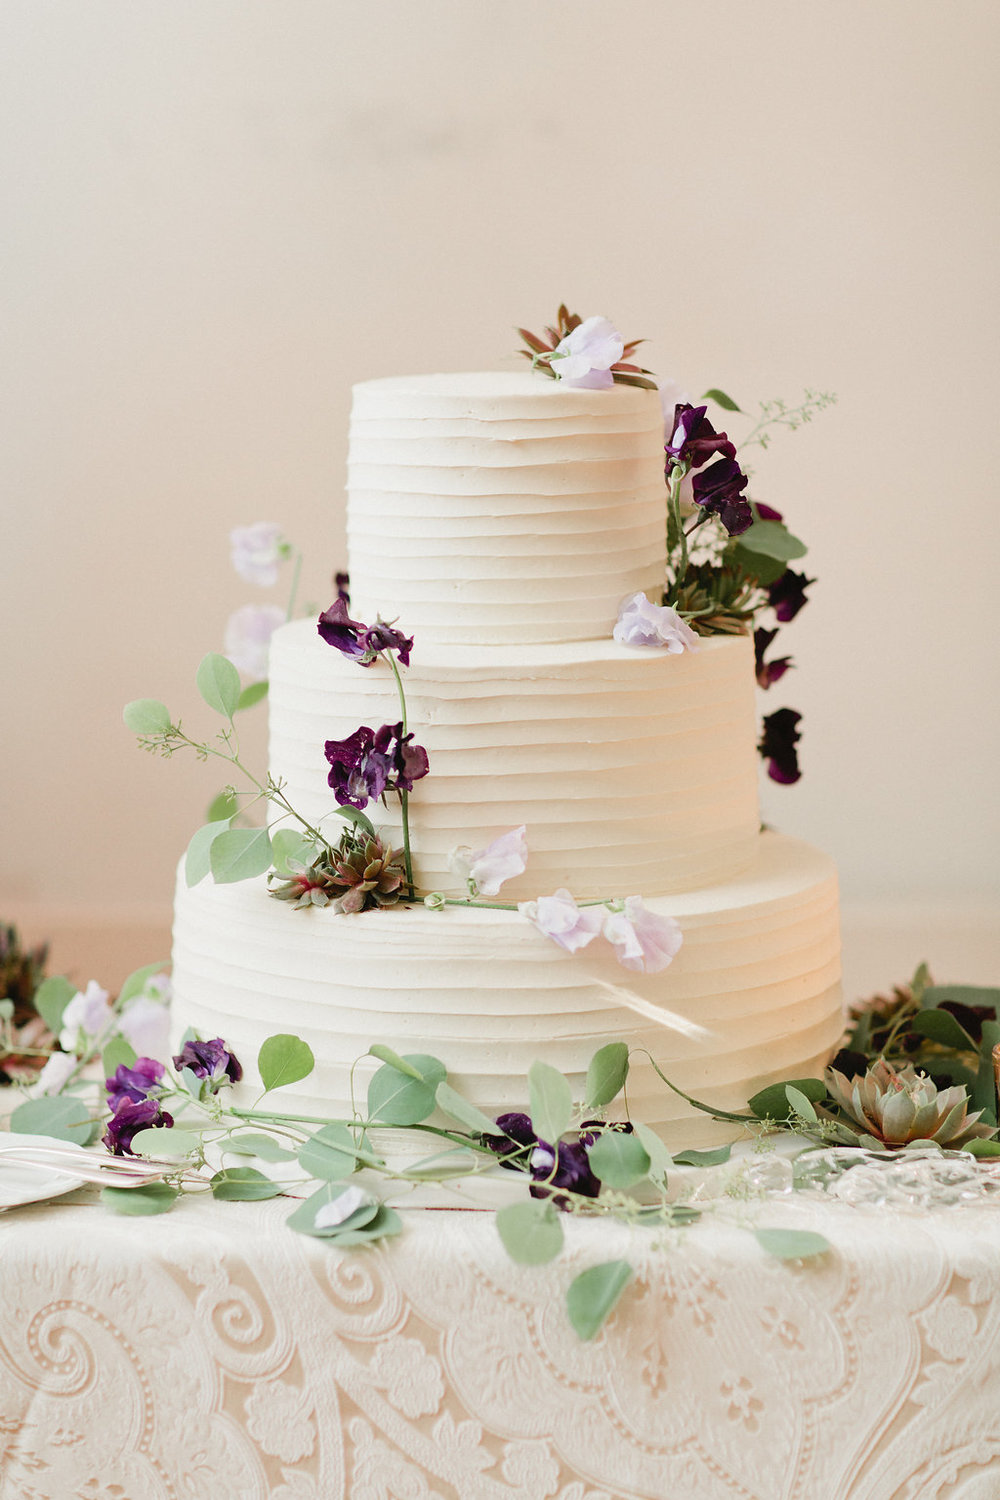 Ethereal forest-themed cake from Lulus Bakery.  Photo by Sasithon Photography.